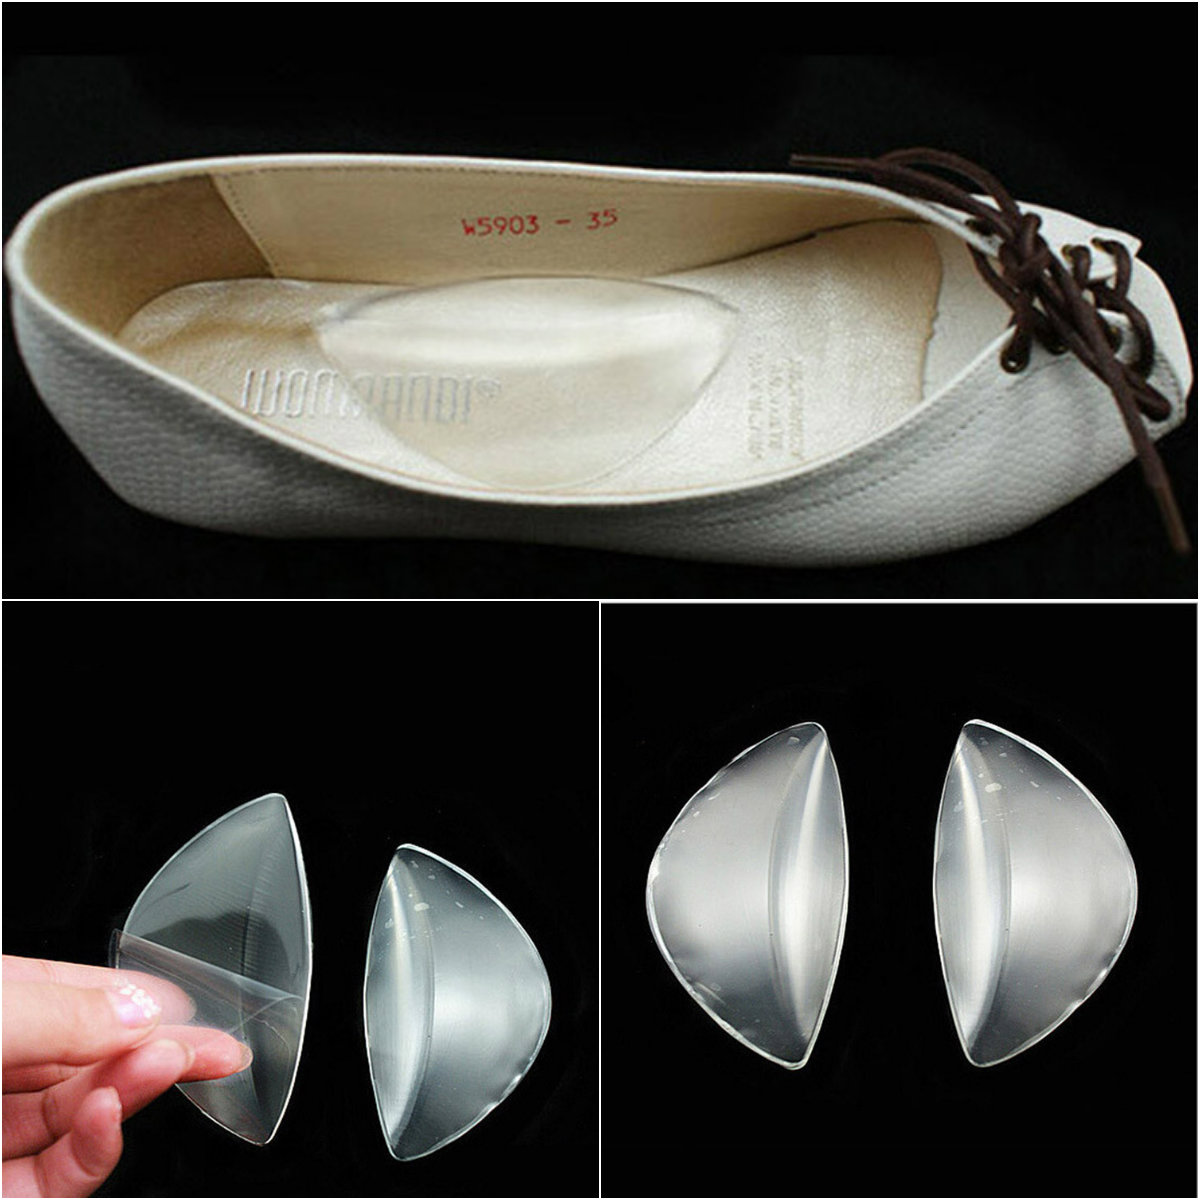 1 Pair Silicone Gel Arch Support Shoe Inserts Foot Insole Wedge Cushion Pads Pain